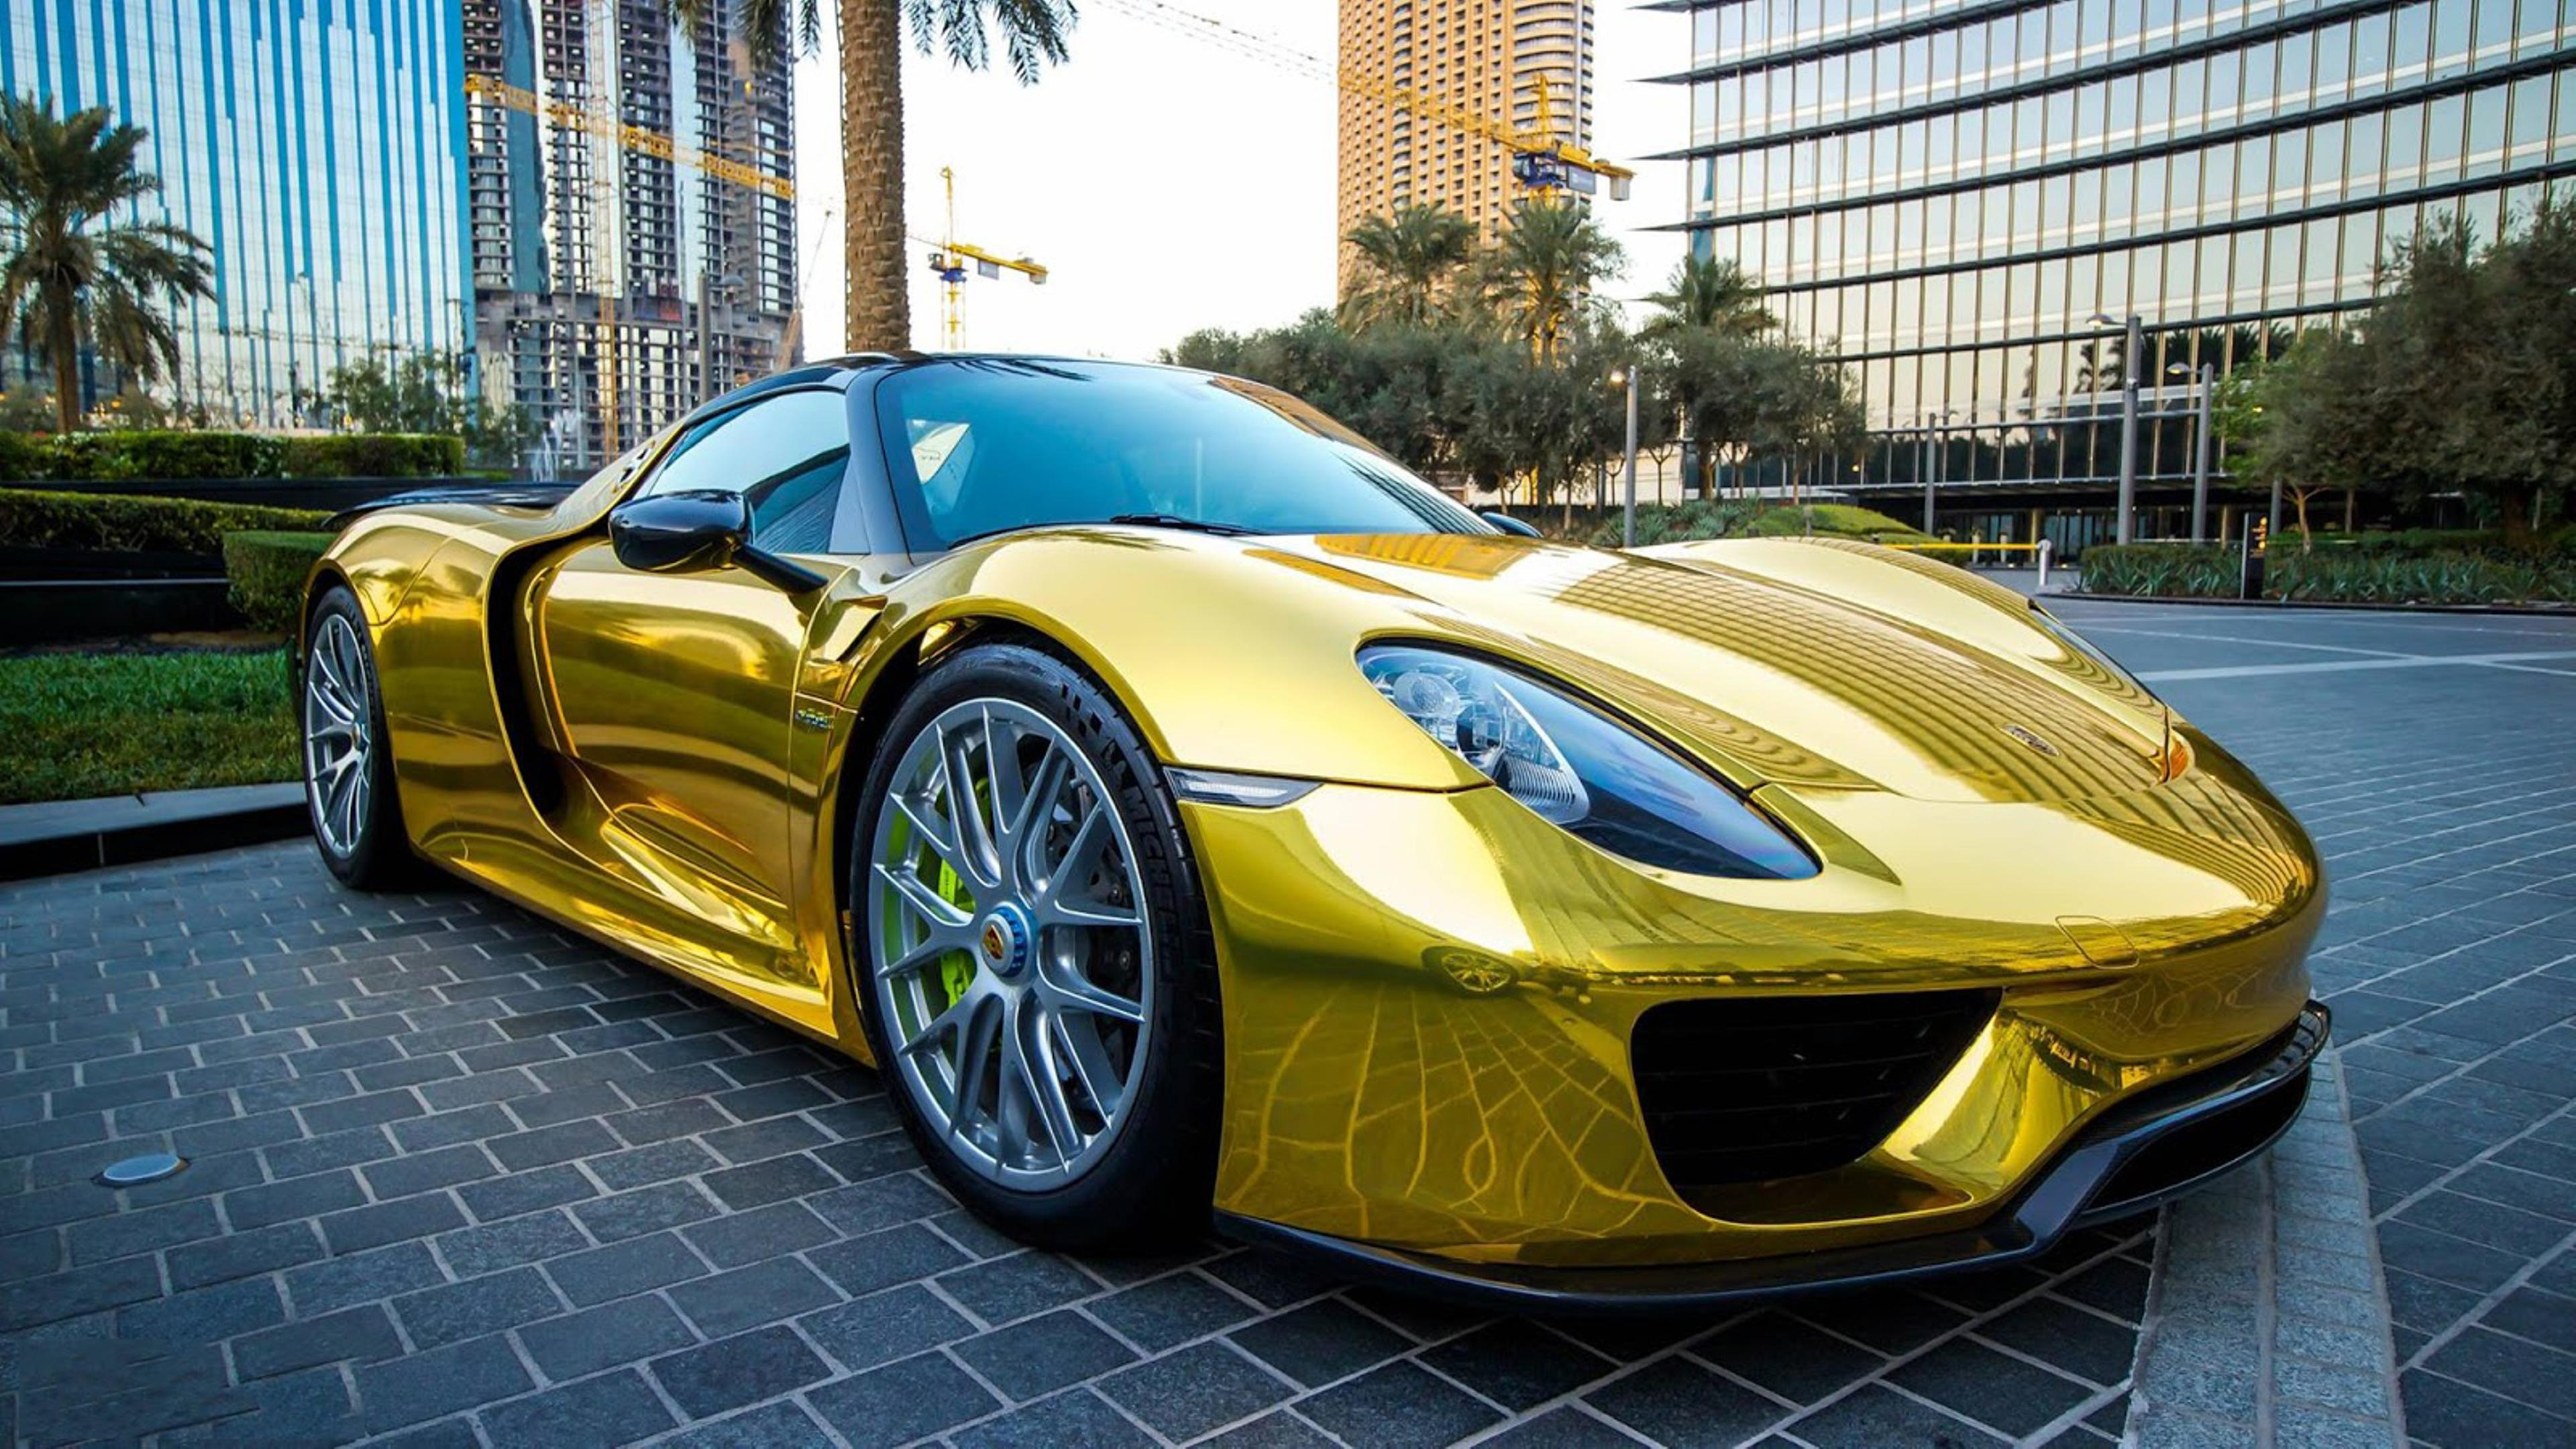 Gold Porsche 918 Spyder In The Parking Wallpaper Download